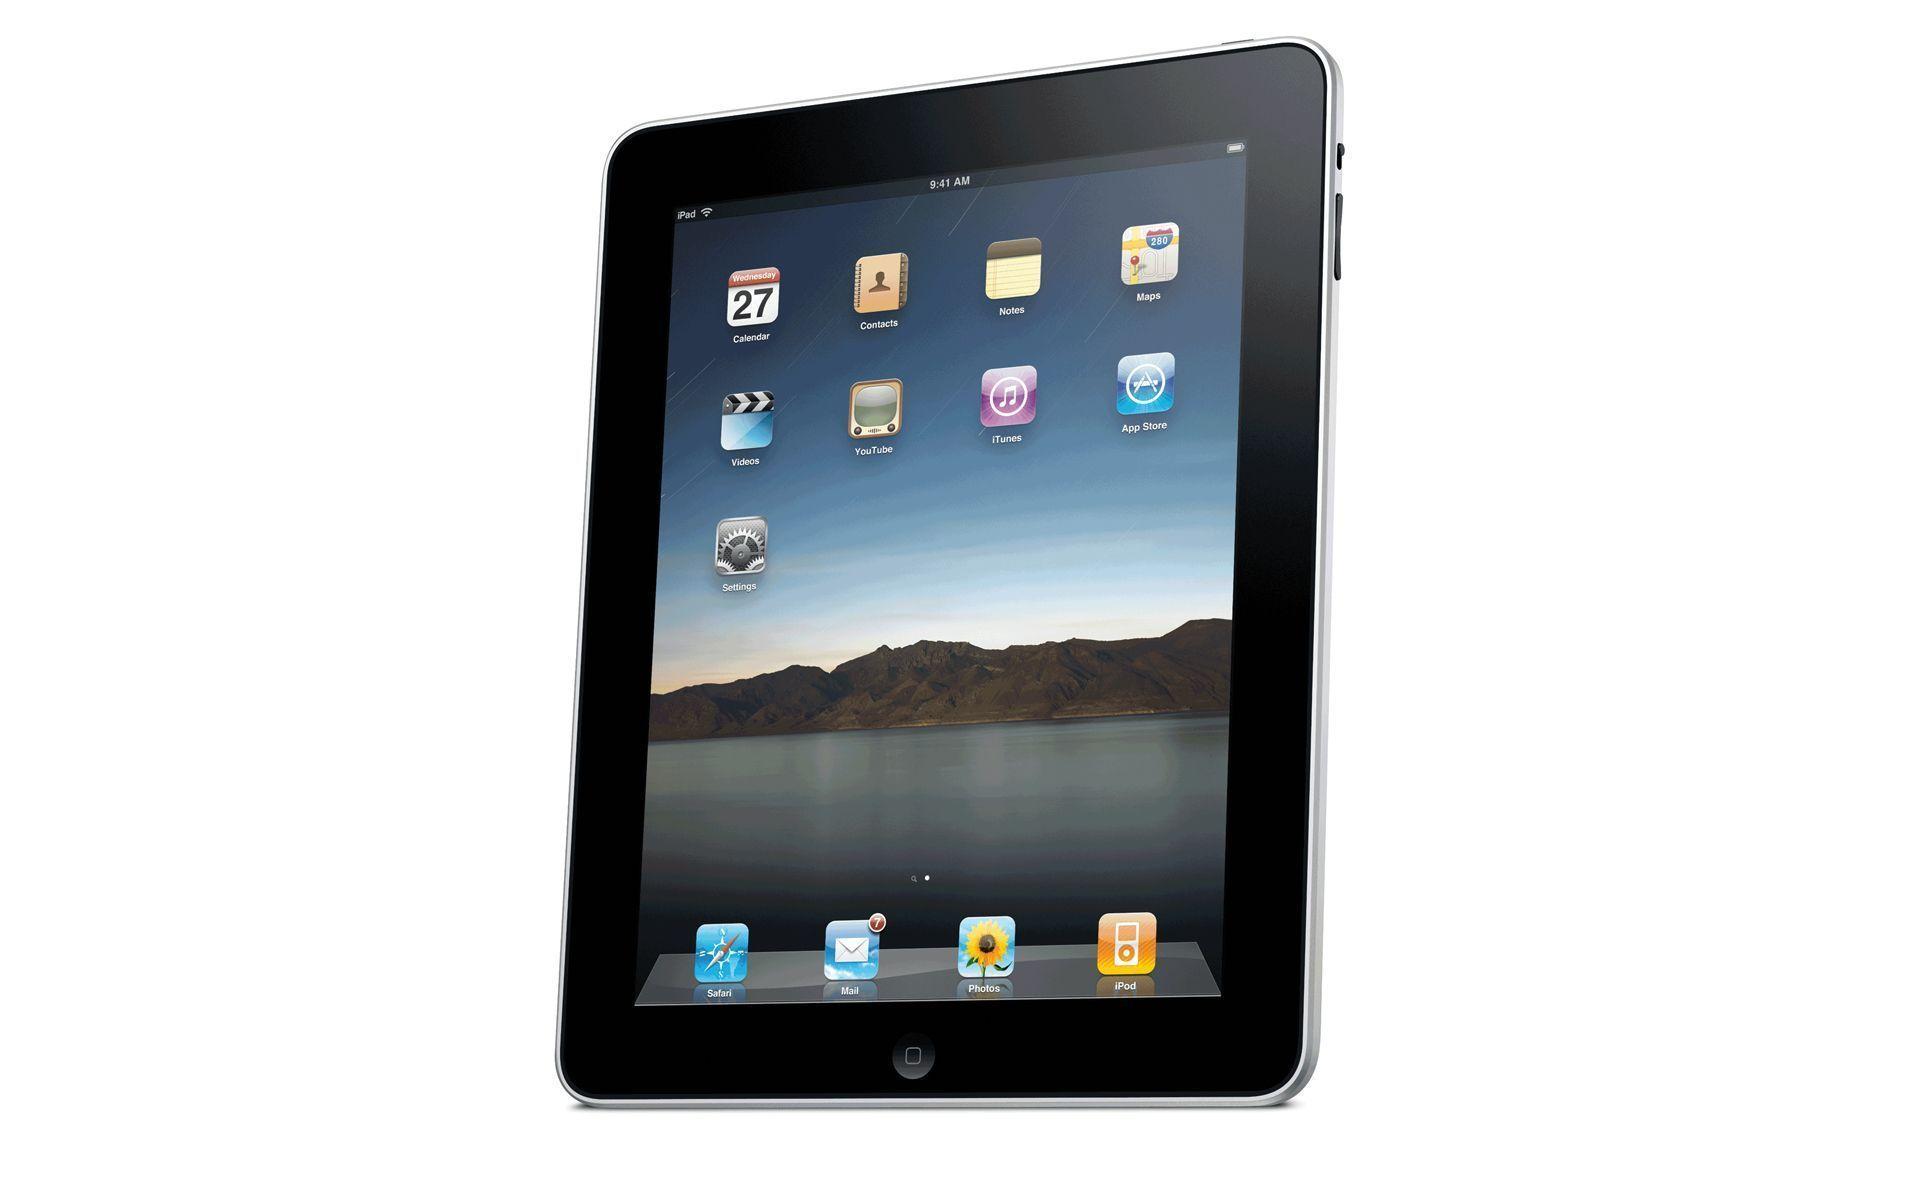 Apples IPad 2 Features Photos And Specifications The